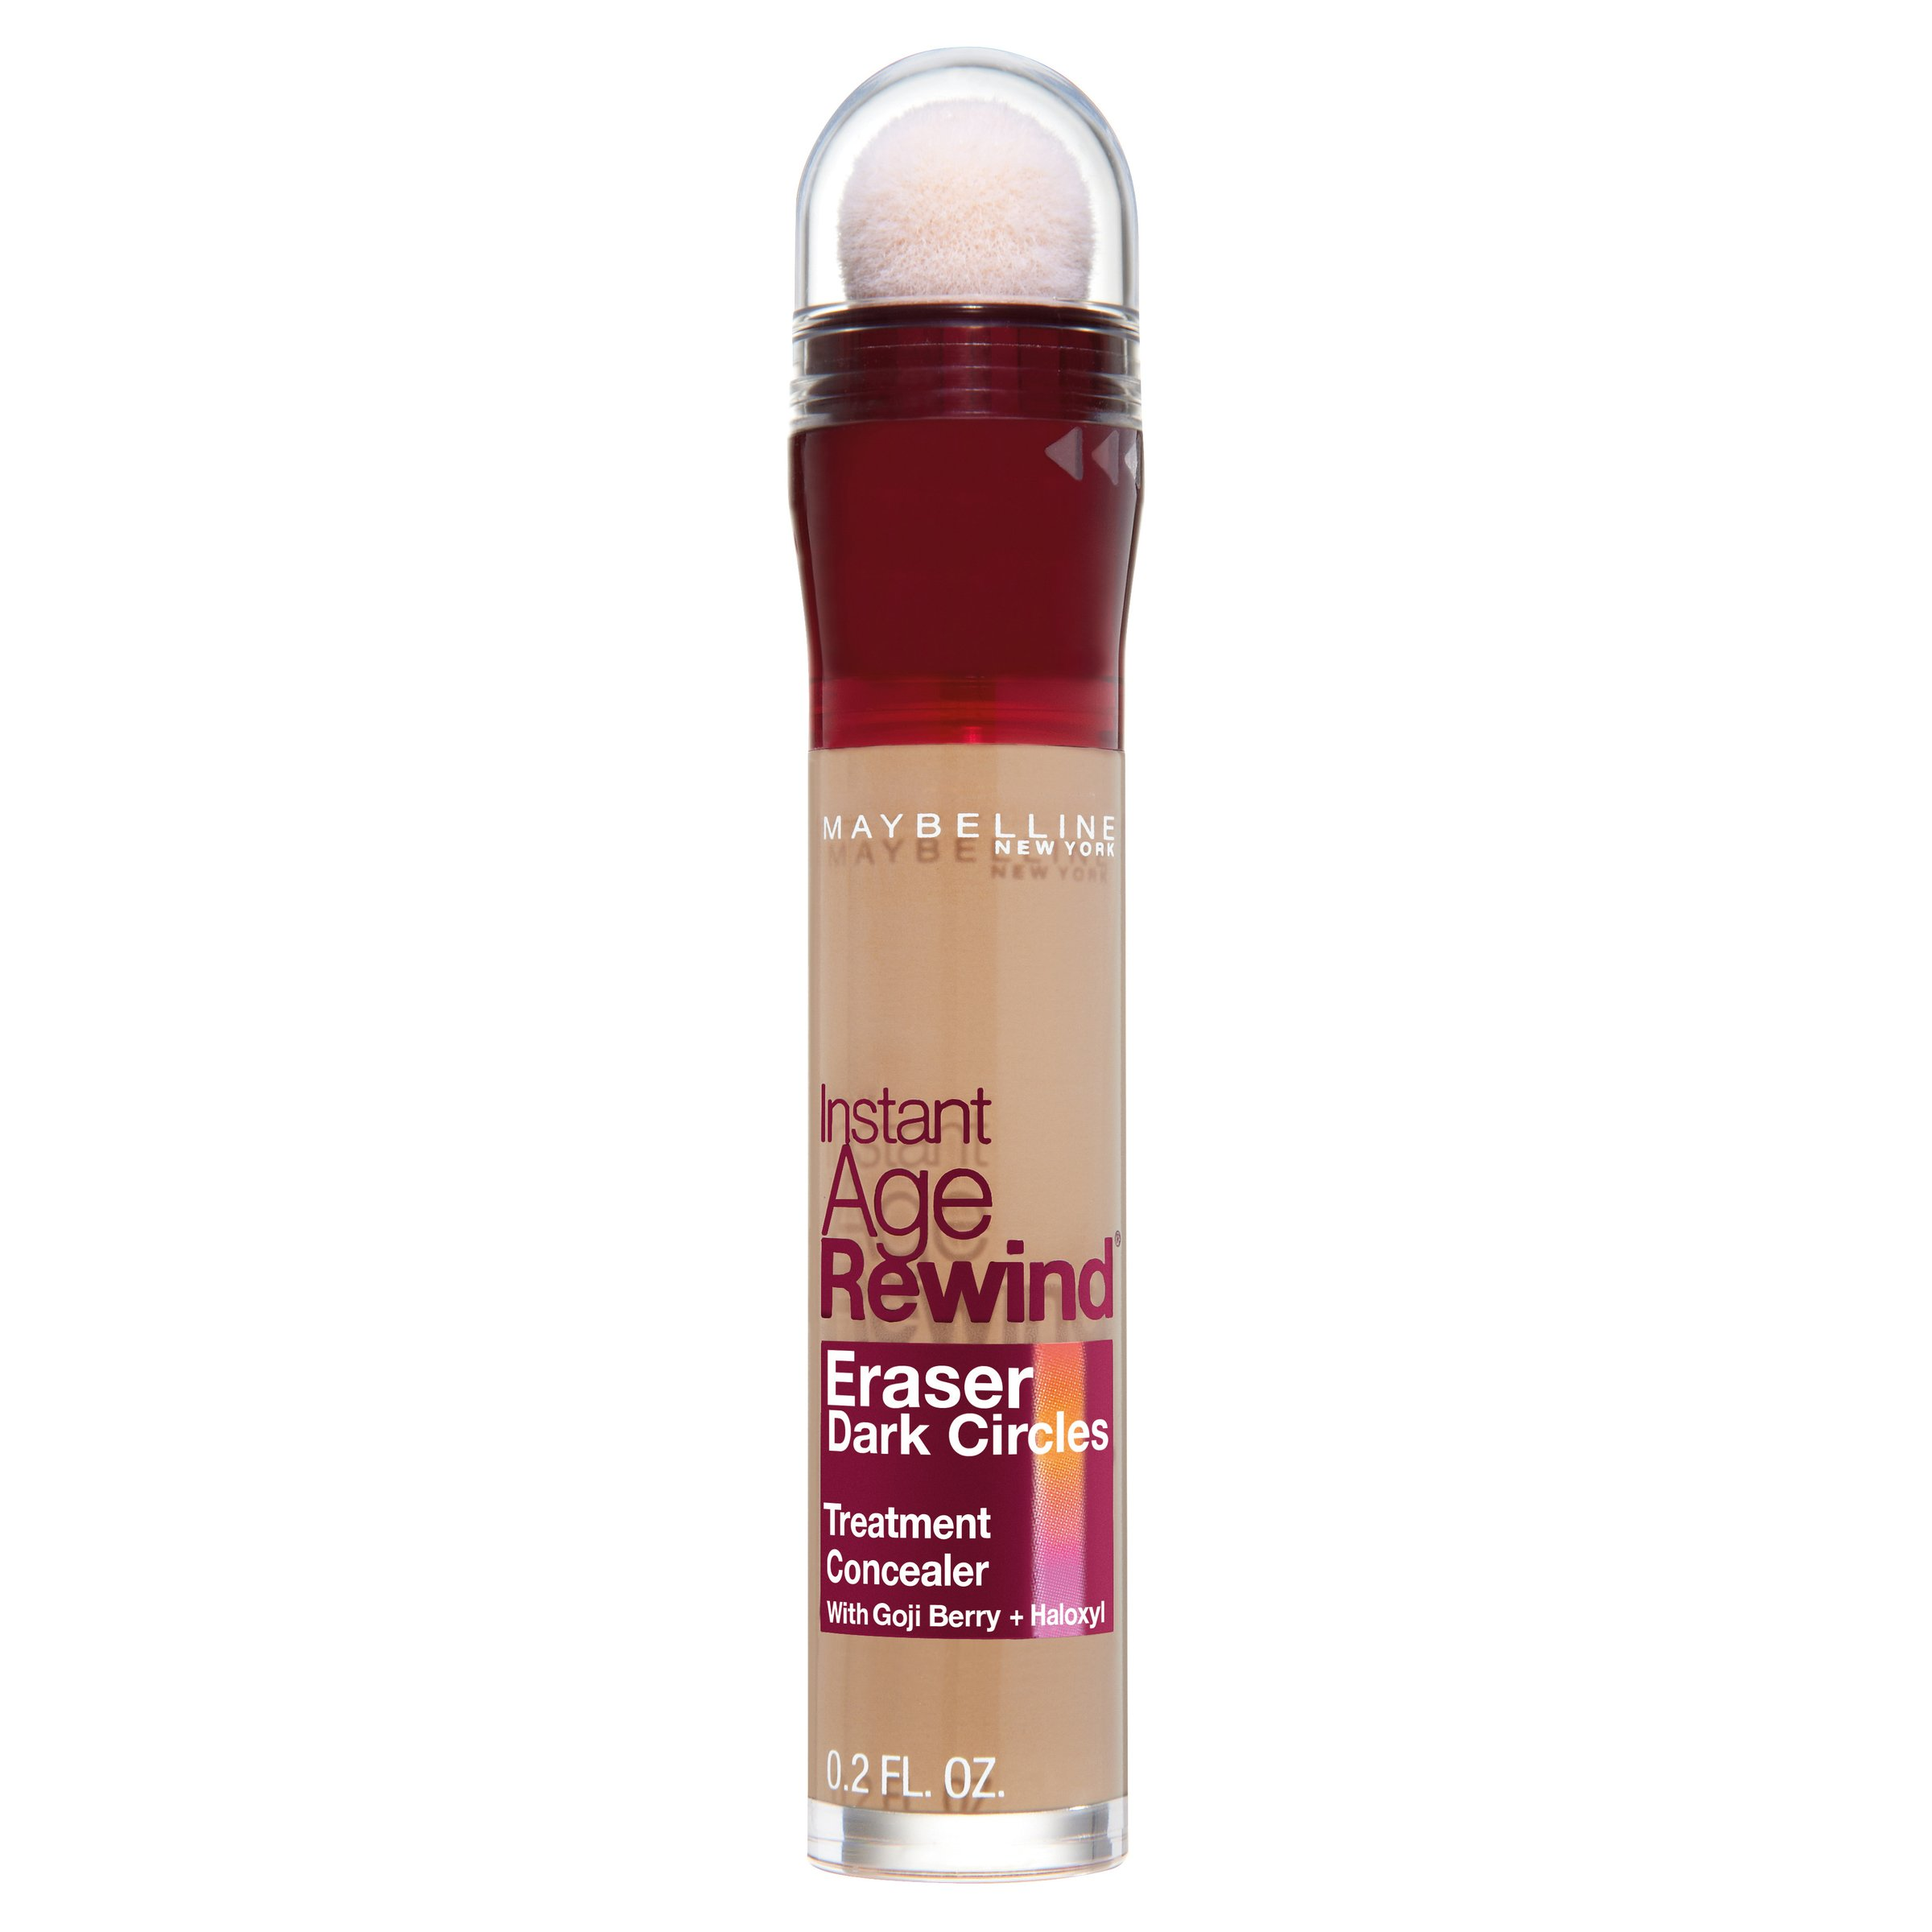 Maybelline Makeup Instant Age Rewind Concealer Dark Circle Eraser Concealer, Medium Shade, 0.2 fl oz